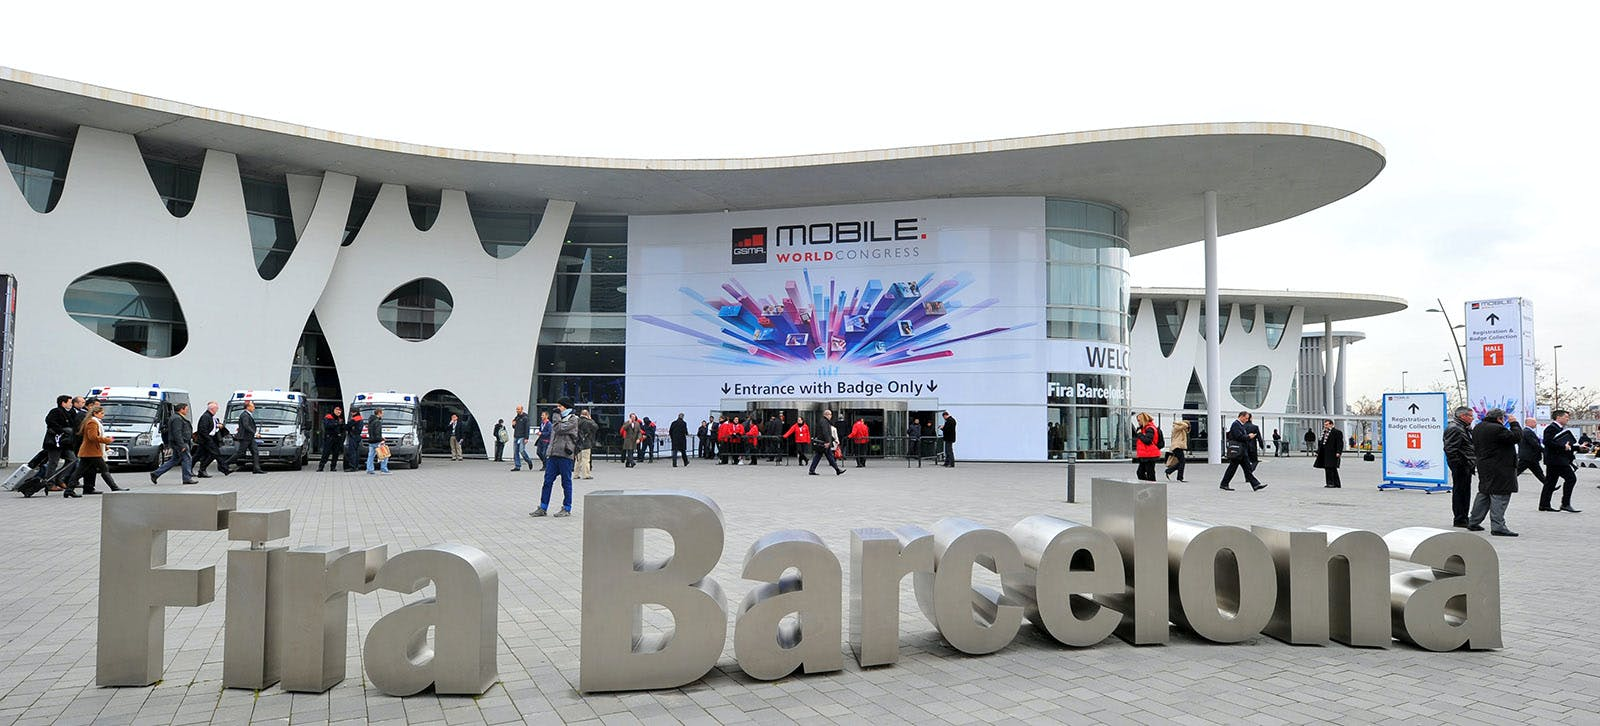 OX MWC - Measurement, VR and underinvestment top the bill at Mobile World Congress 2016